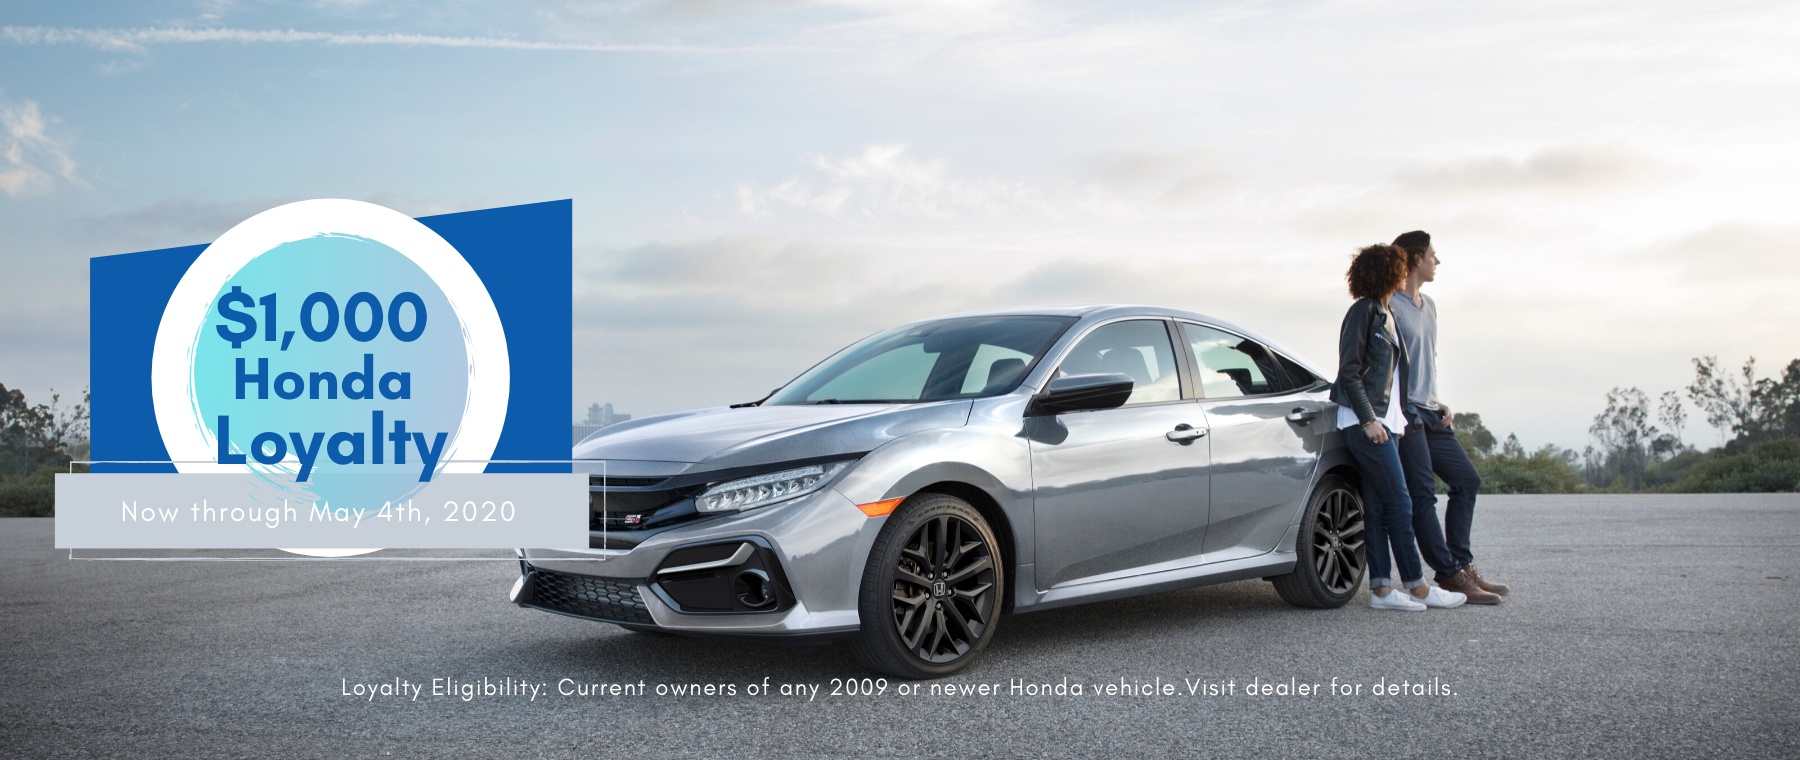 Honda Loyalty offer